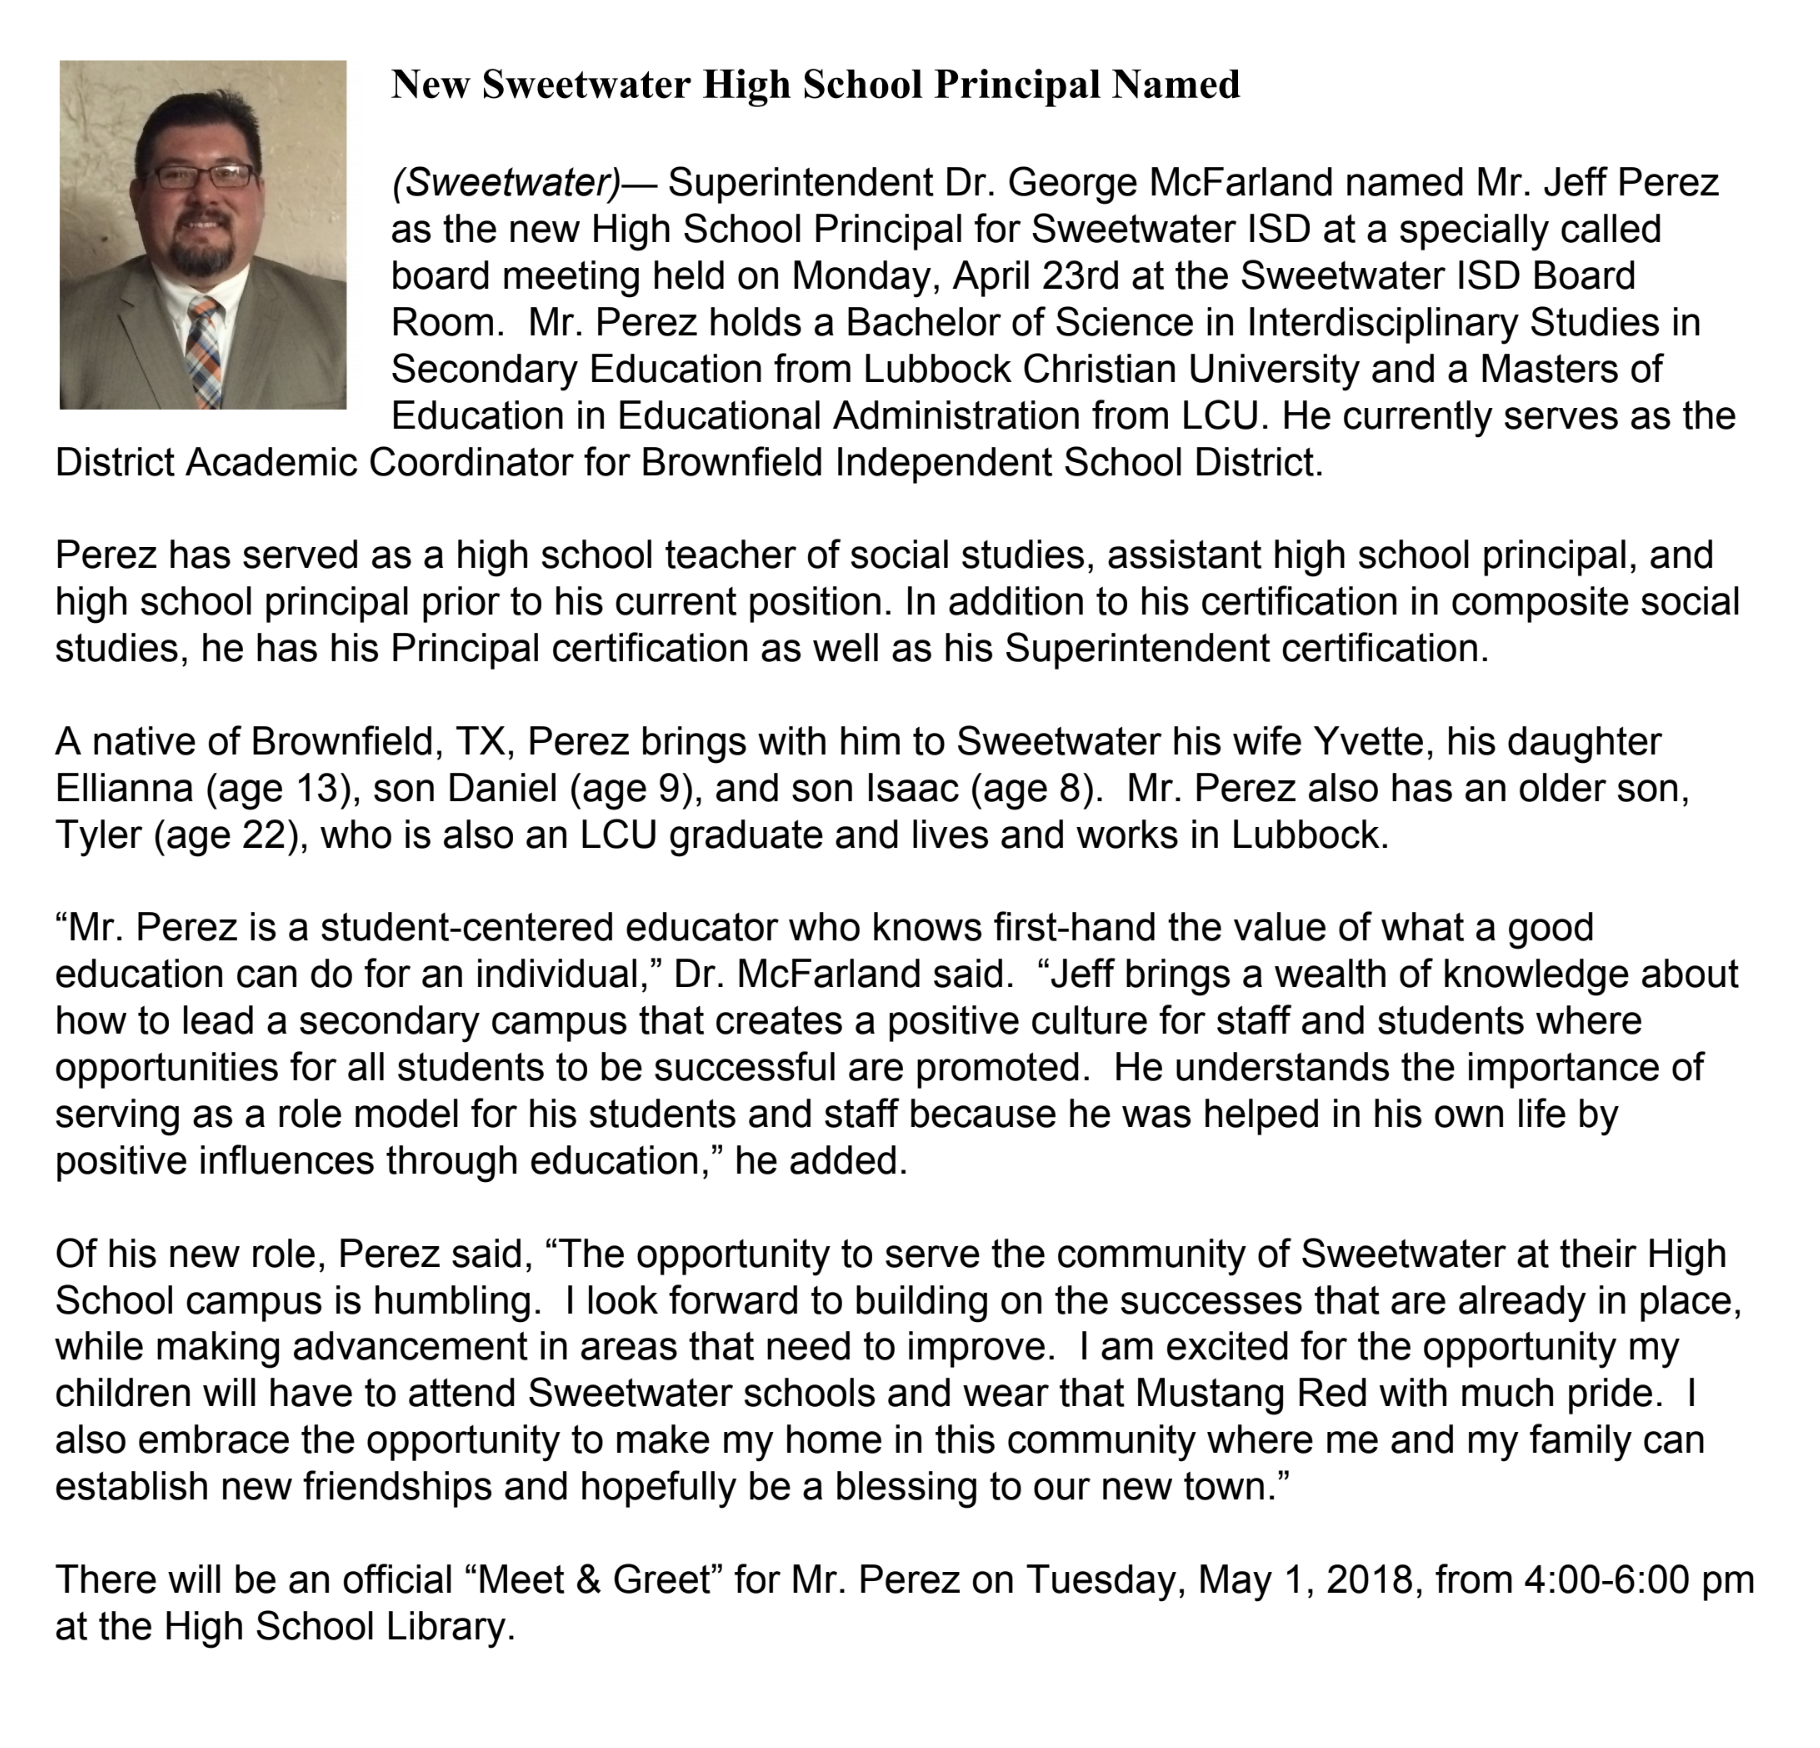 Mr Jeff Perez Named New Sweetwater High School Principal For 2018